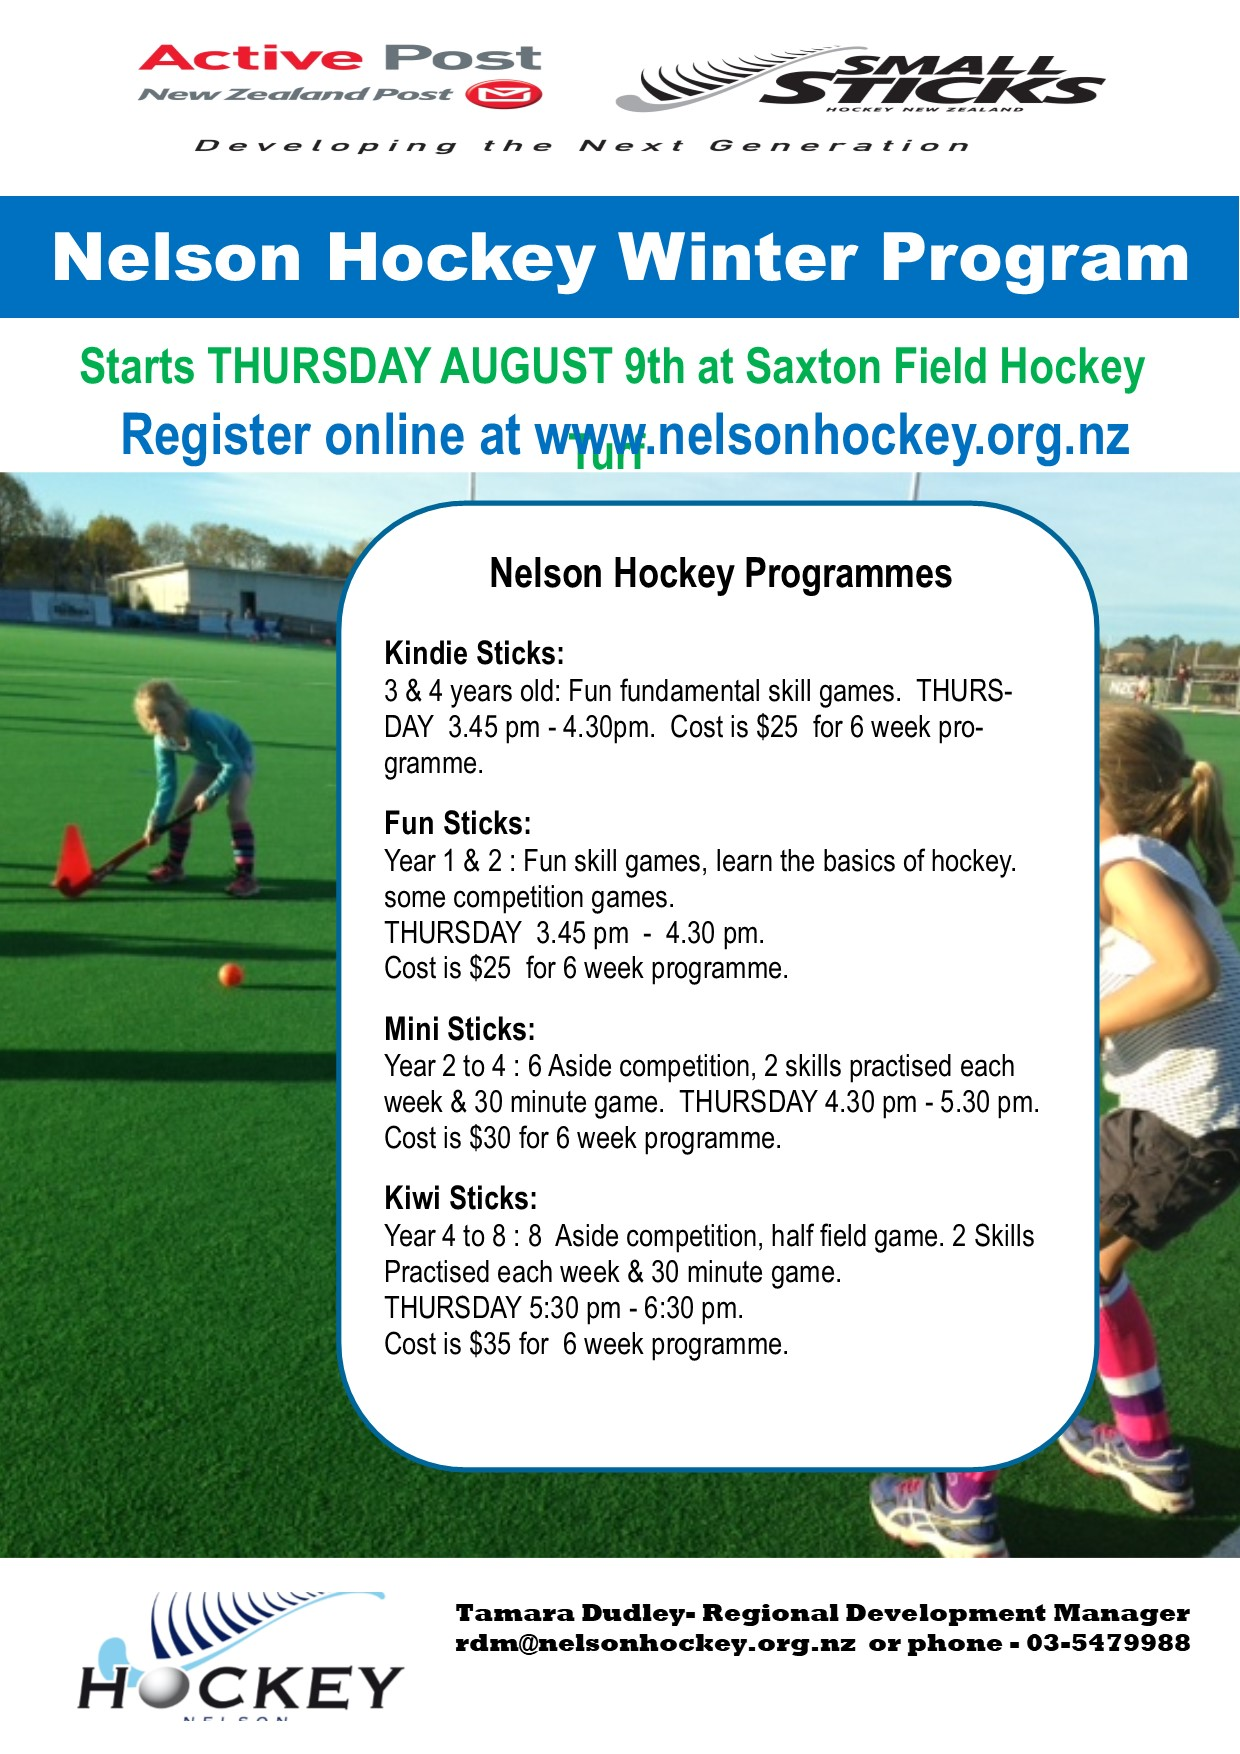 2018 WINTER JUNIOR PROGRAMME (AUGUST/SEPTEMBER) Will Start On THURSDAY AUGUST 9th!!!